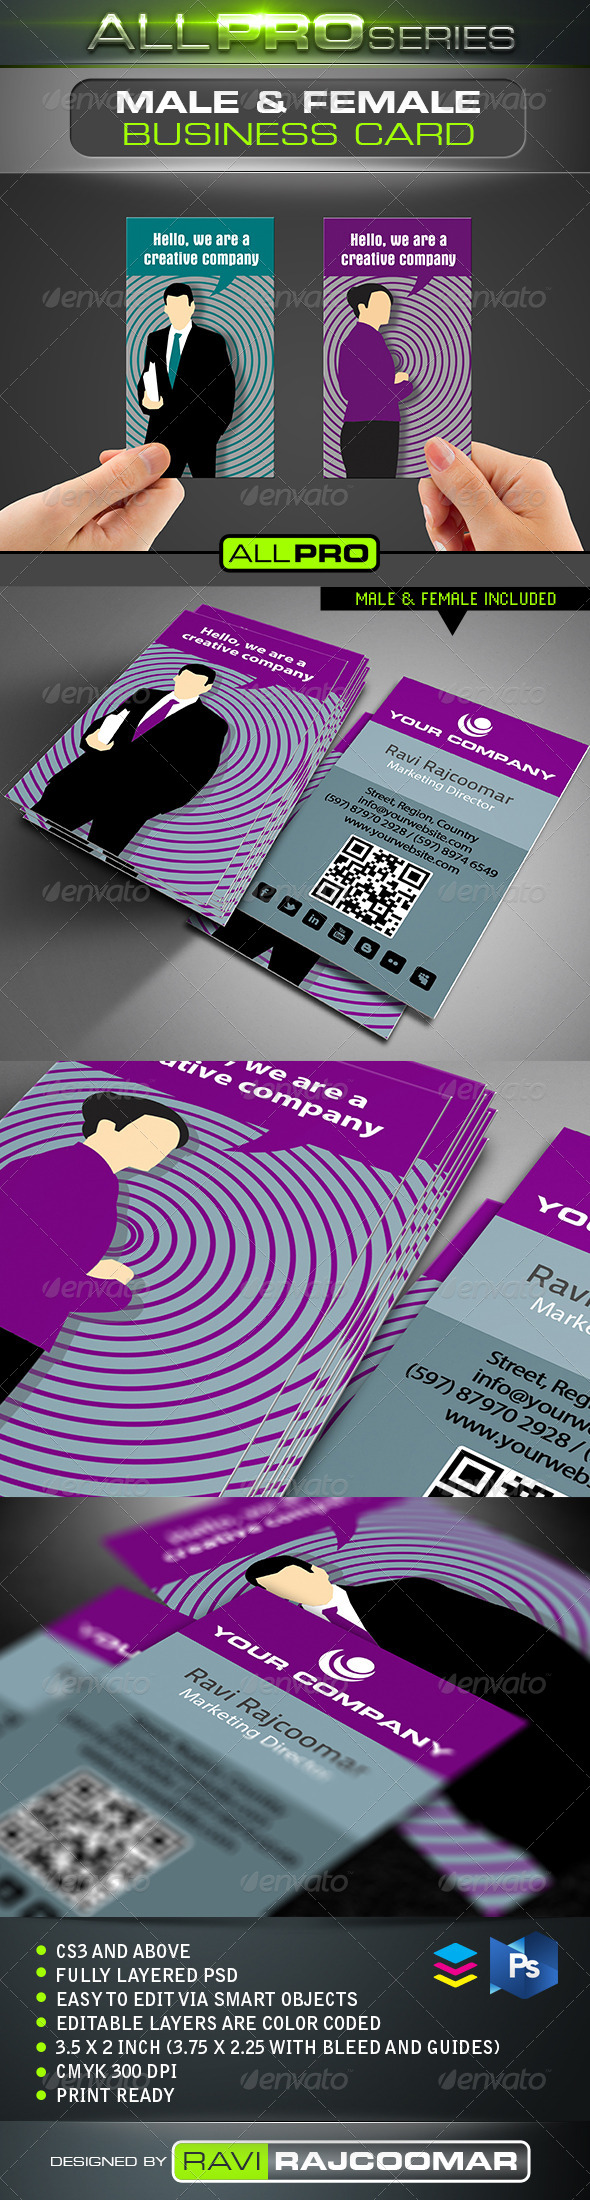 Male & Female Business Card